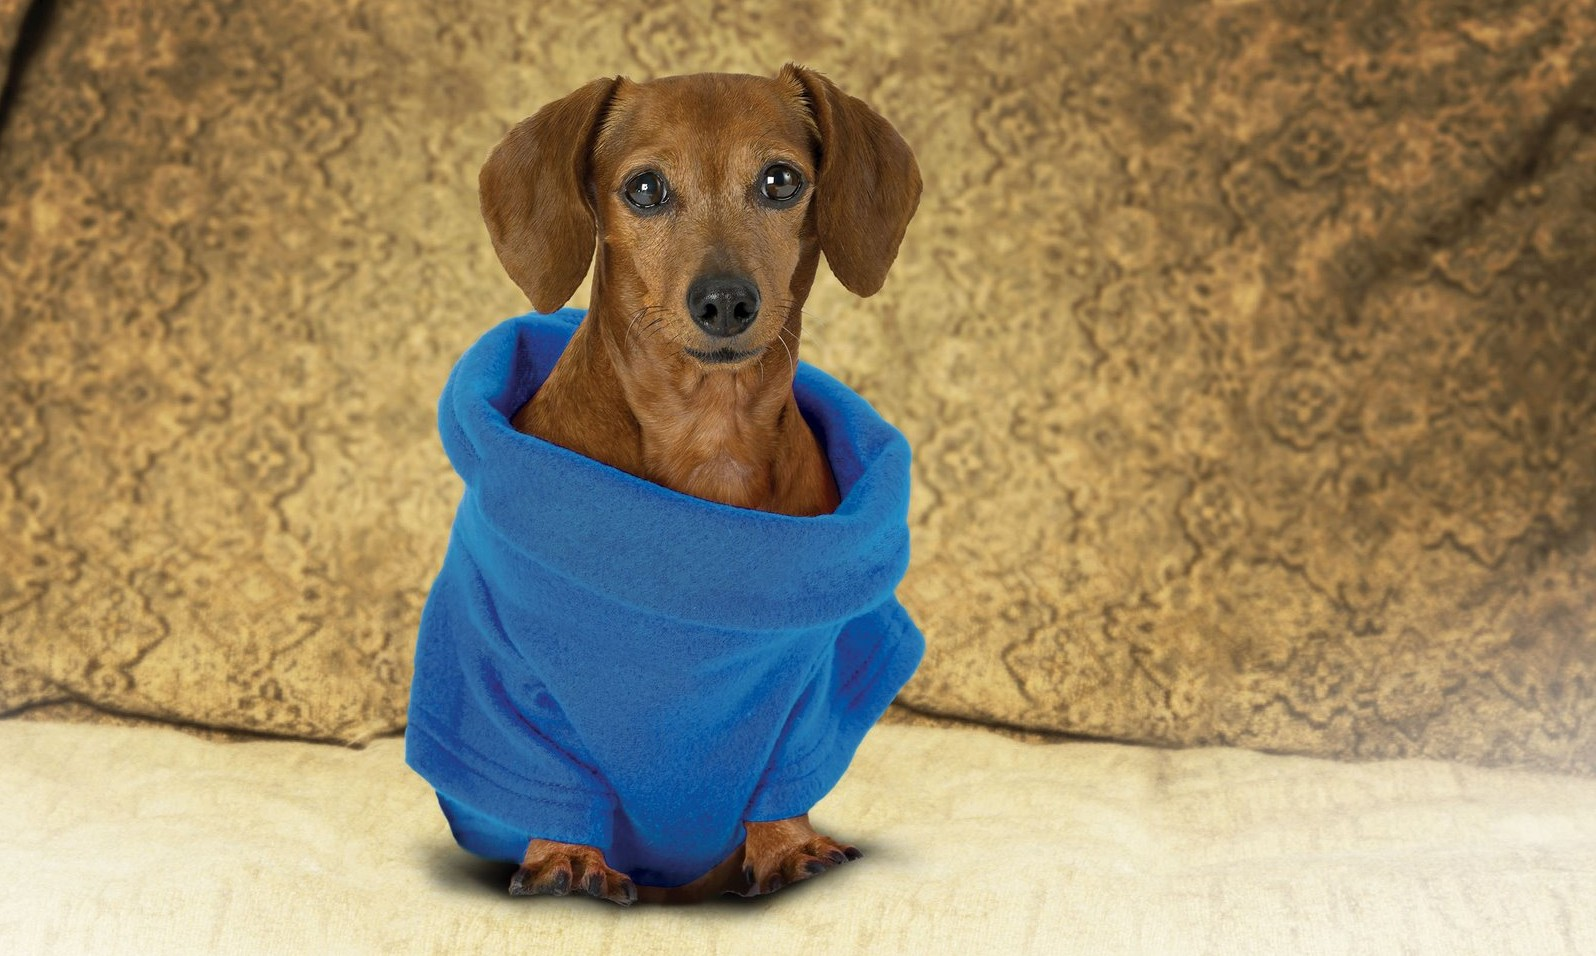 The Snuggie for Dogs fleece blanket coat in blue. (PRNewsFoto/Allstar Products Group, LLC)